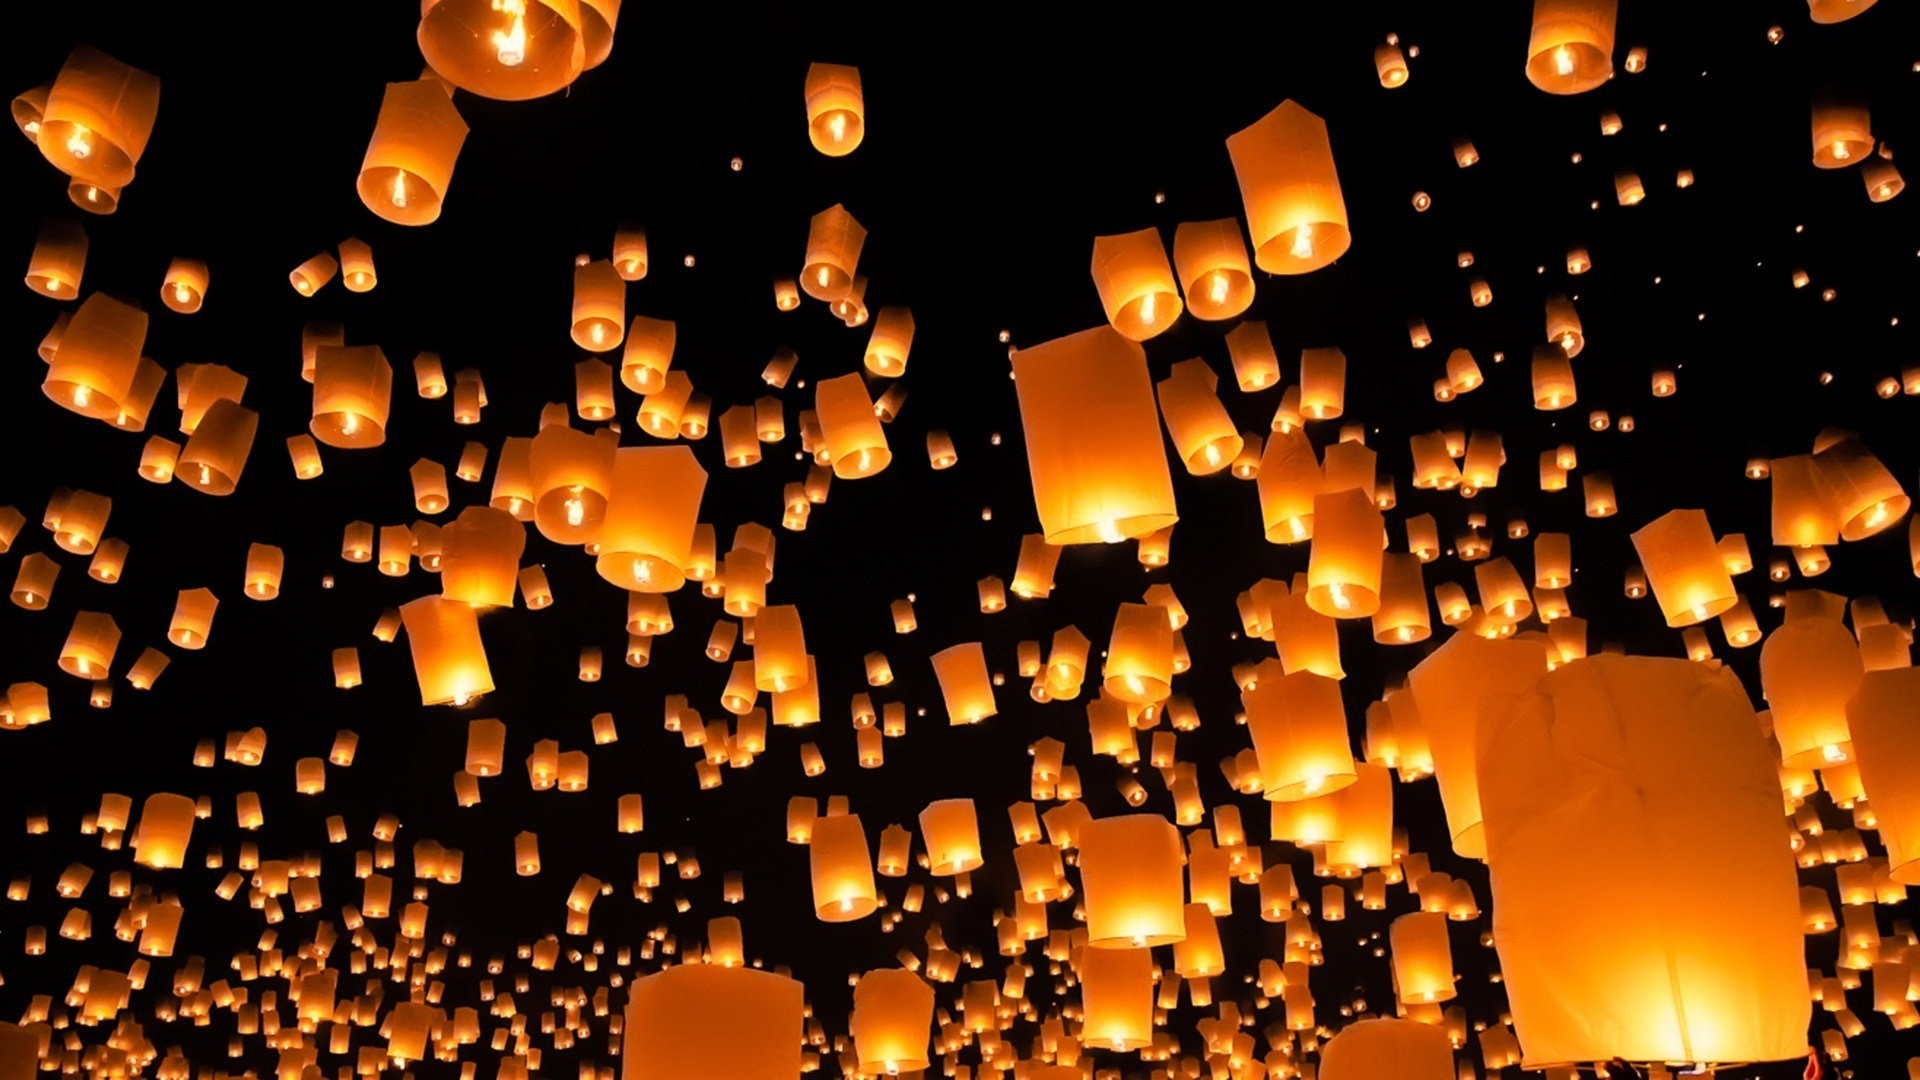 1920x1080 Candle lights flying amazing wallpapers